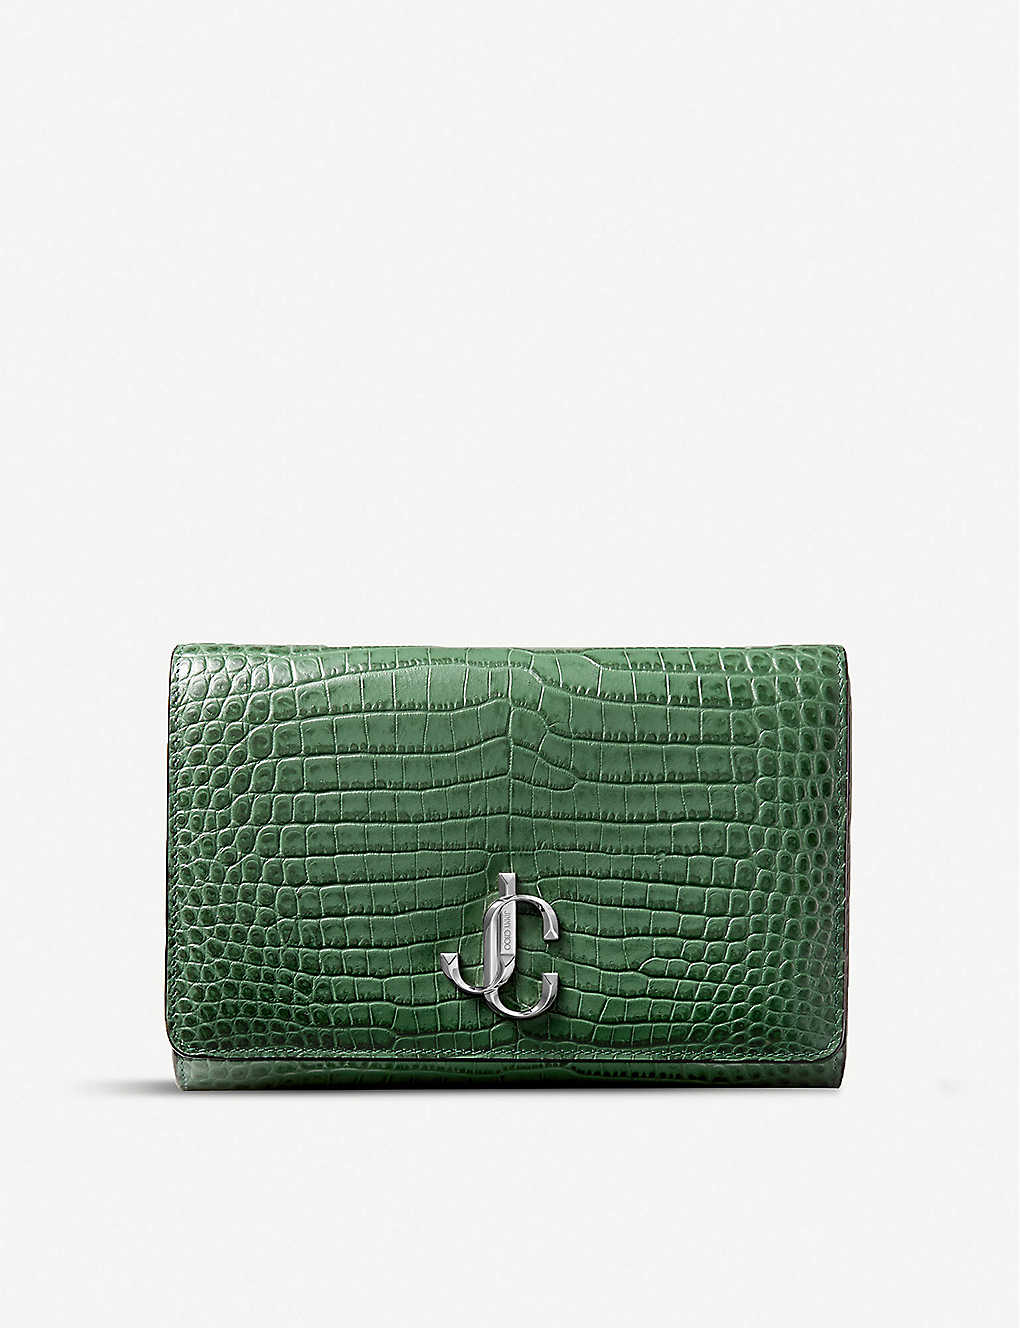 JIMMY CHOO: Varenne croc-embossed leather clutch